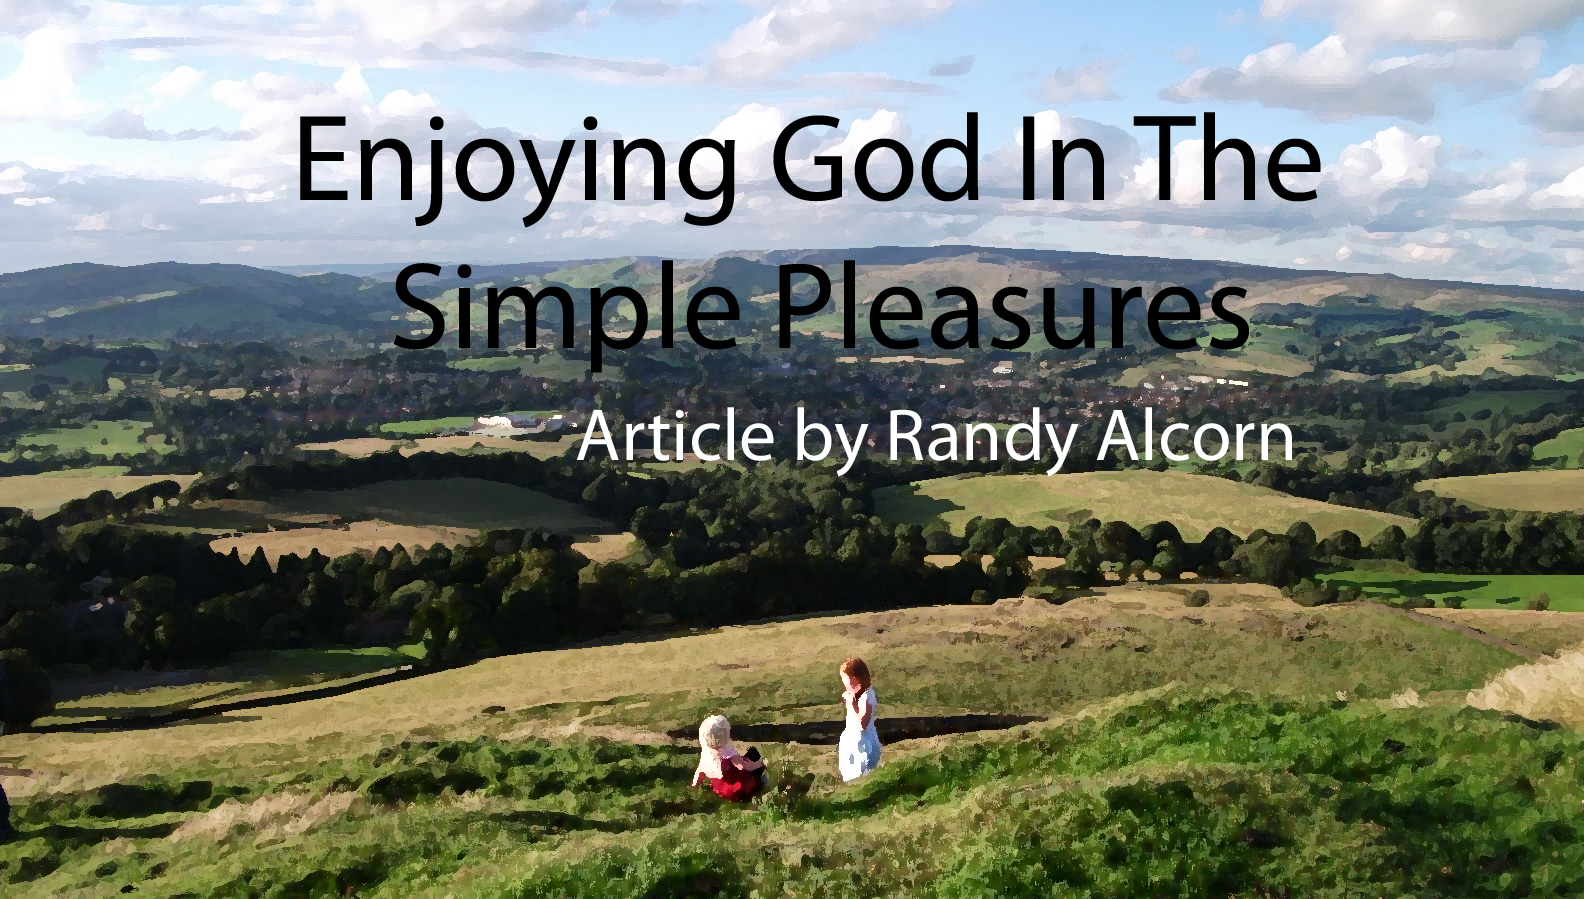 Enjoying God In The Simple Pleasures Of Life- Randy Alcorn